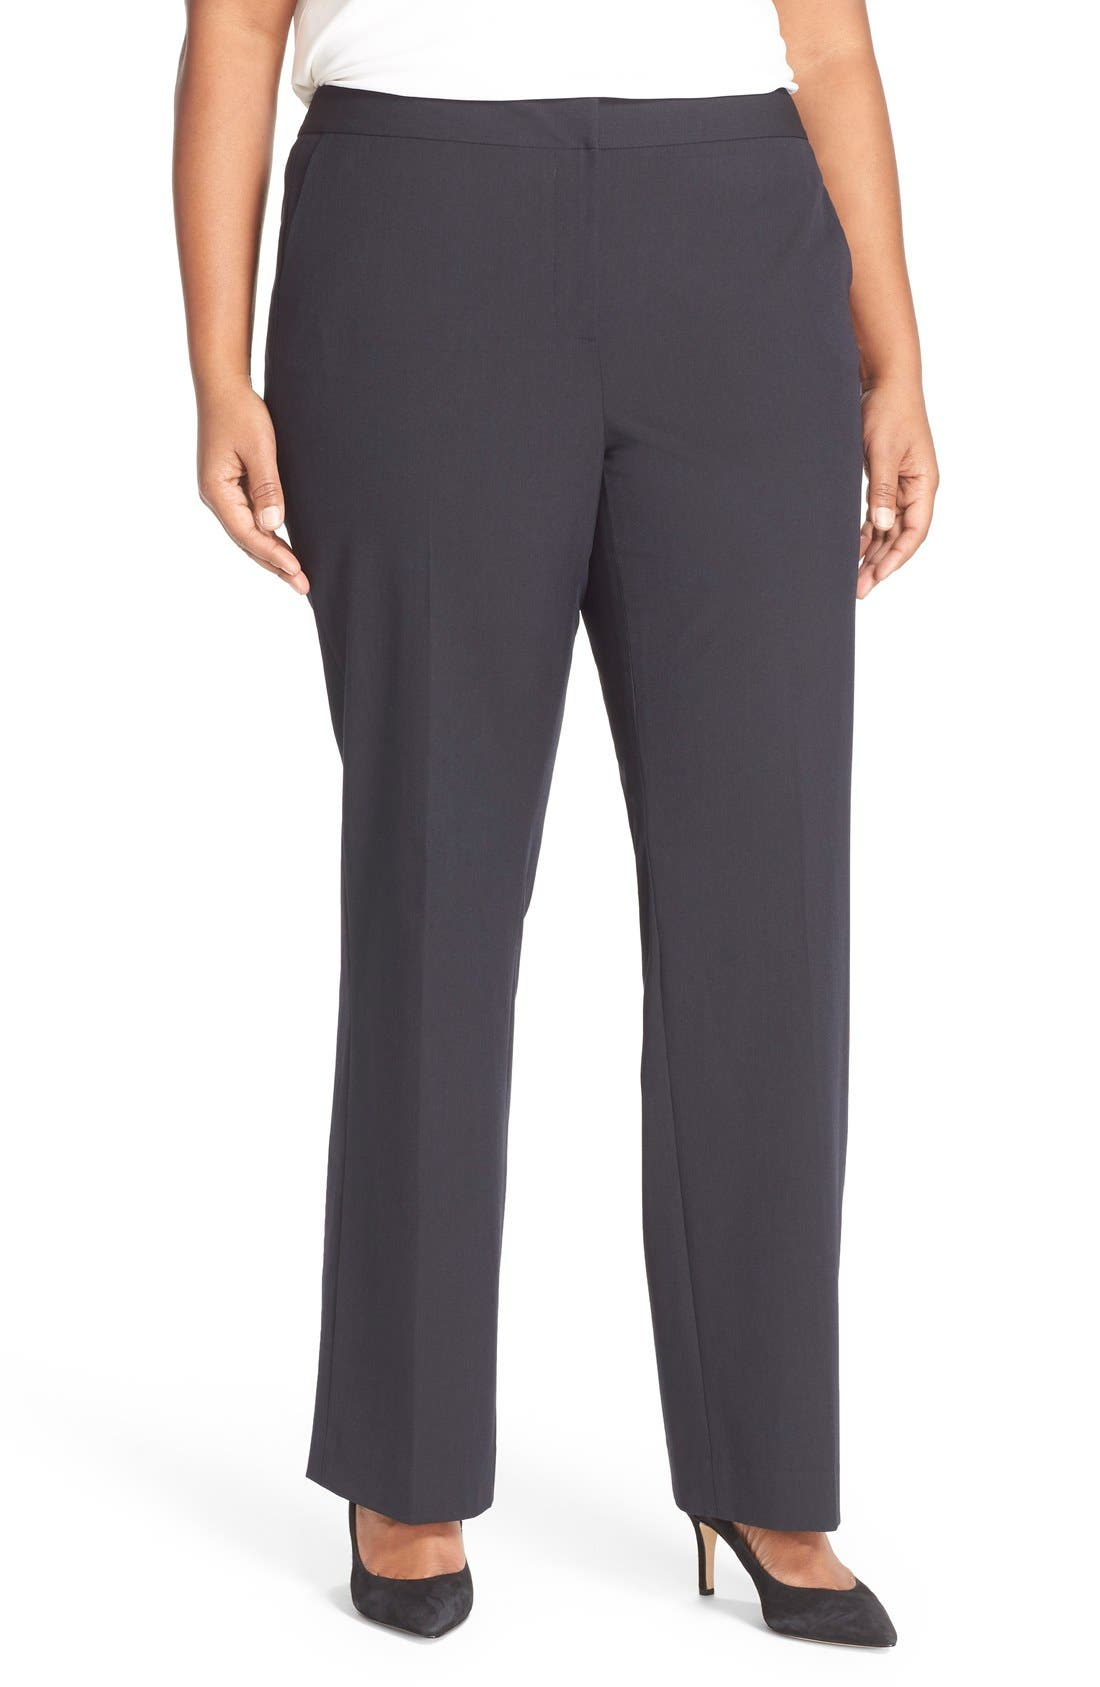 SEJOUR 'Ela' Stretch Curvy Fit Wide Leg Suit